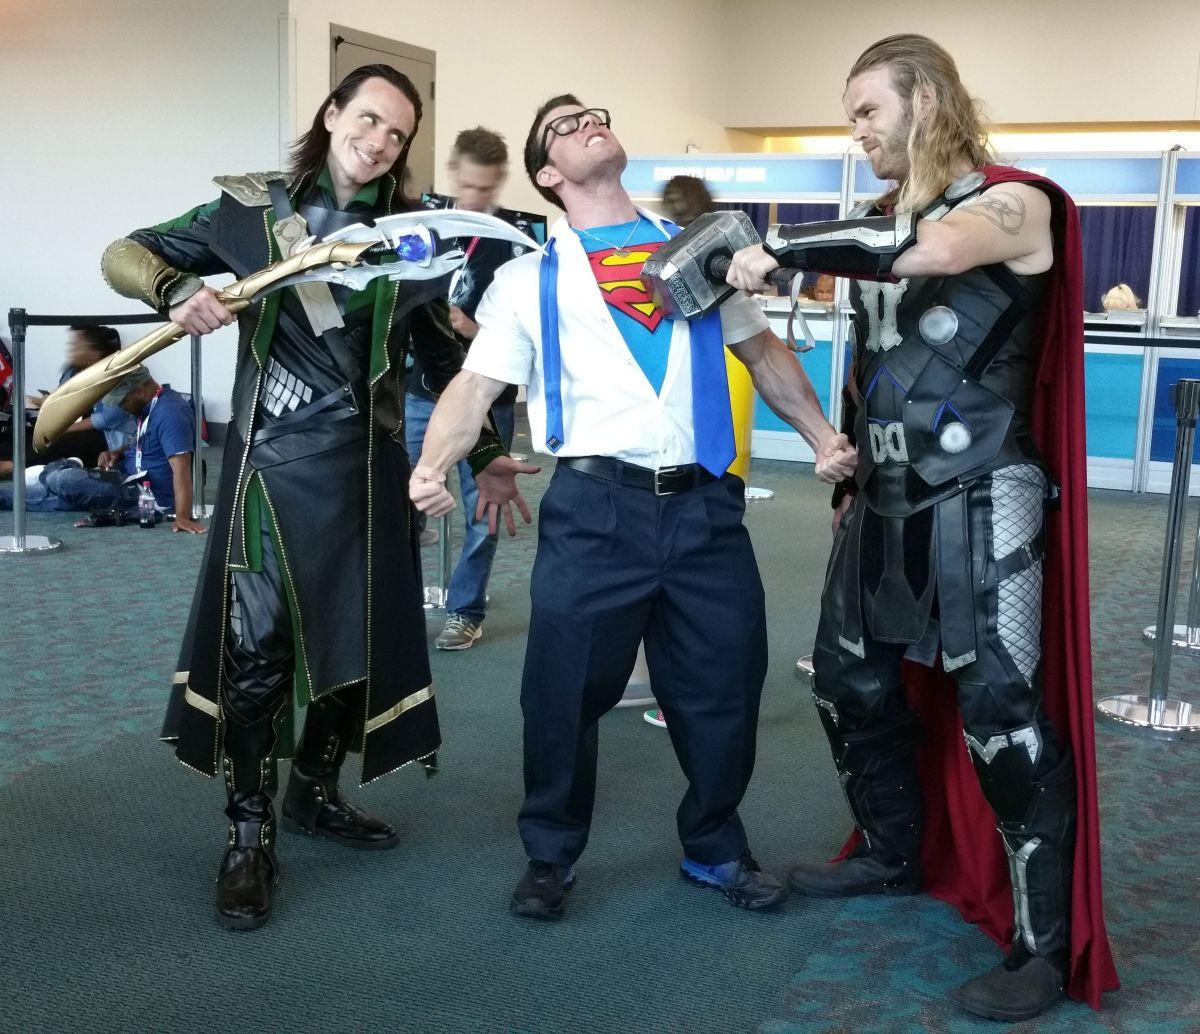 sdcc2015-07-10-cosplay-09